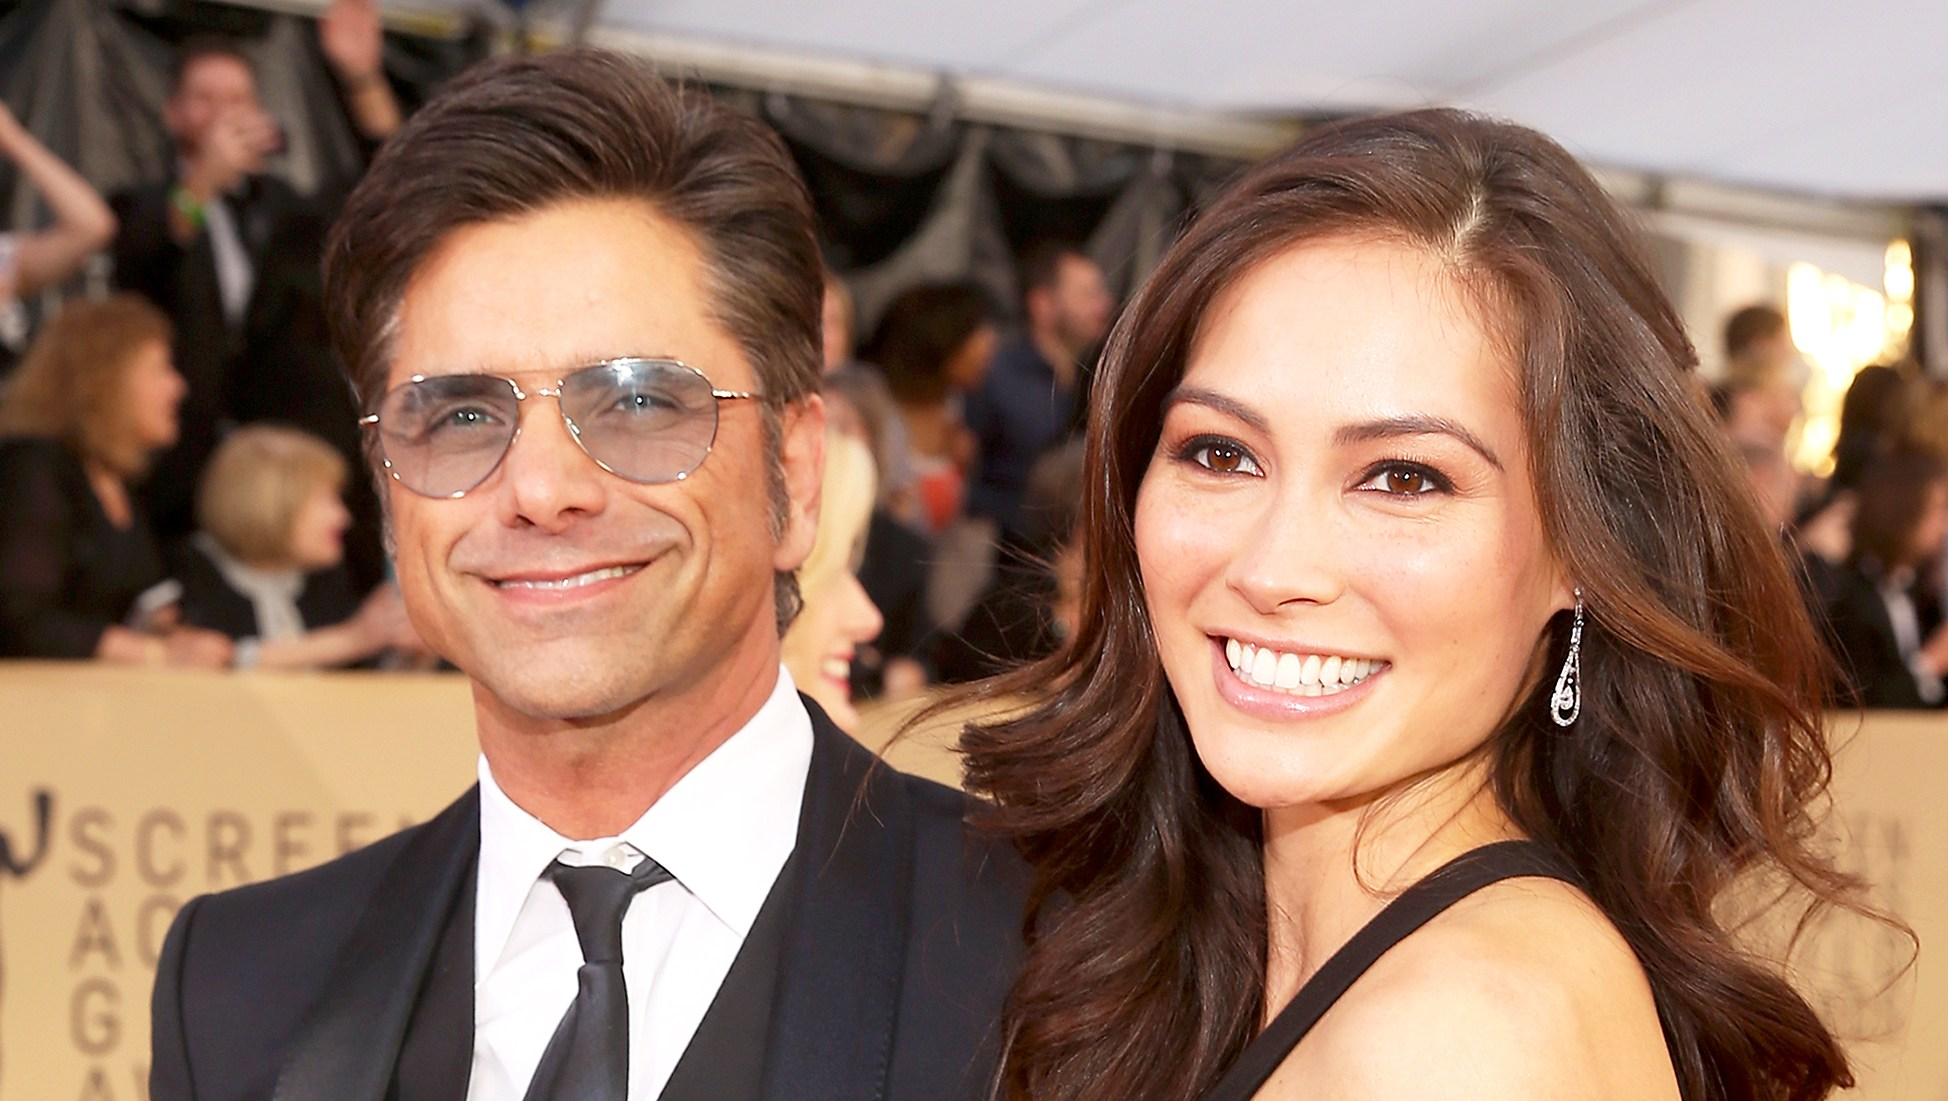 John Stamos and Caitlin McHugh attend the 24th Annual Screen Actors Guild Awards at The Shrine Auditorium in Los Angeles, California.